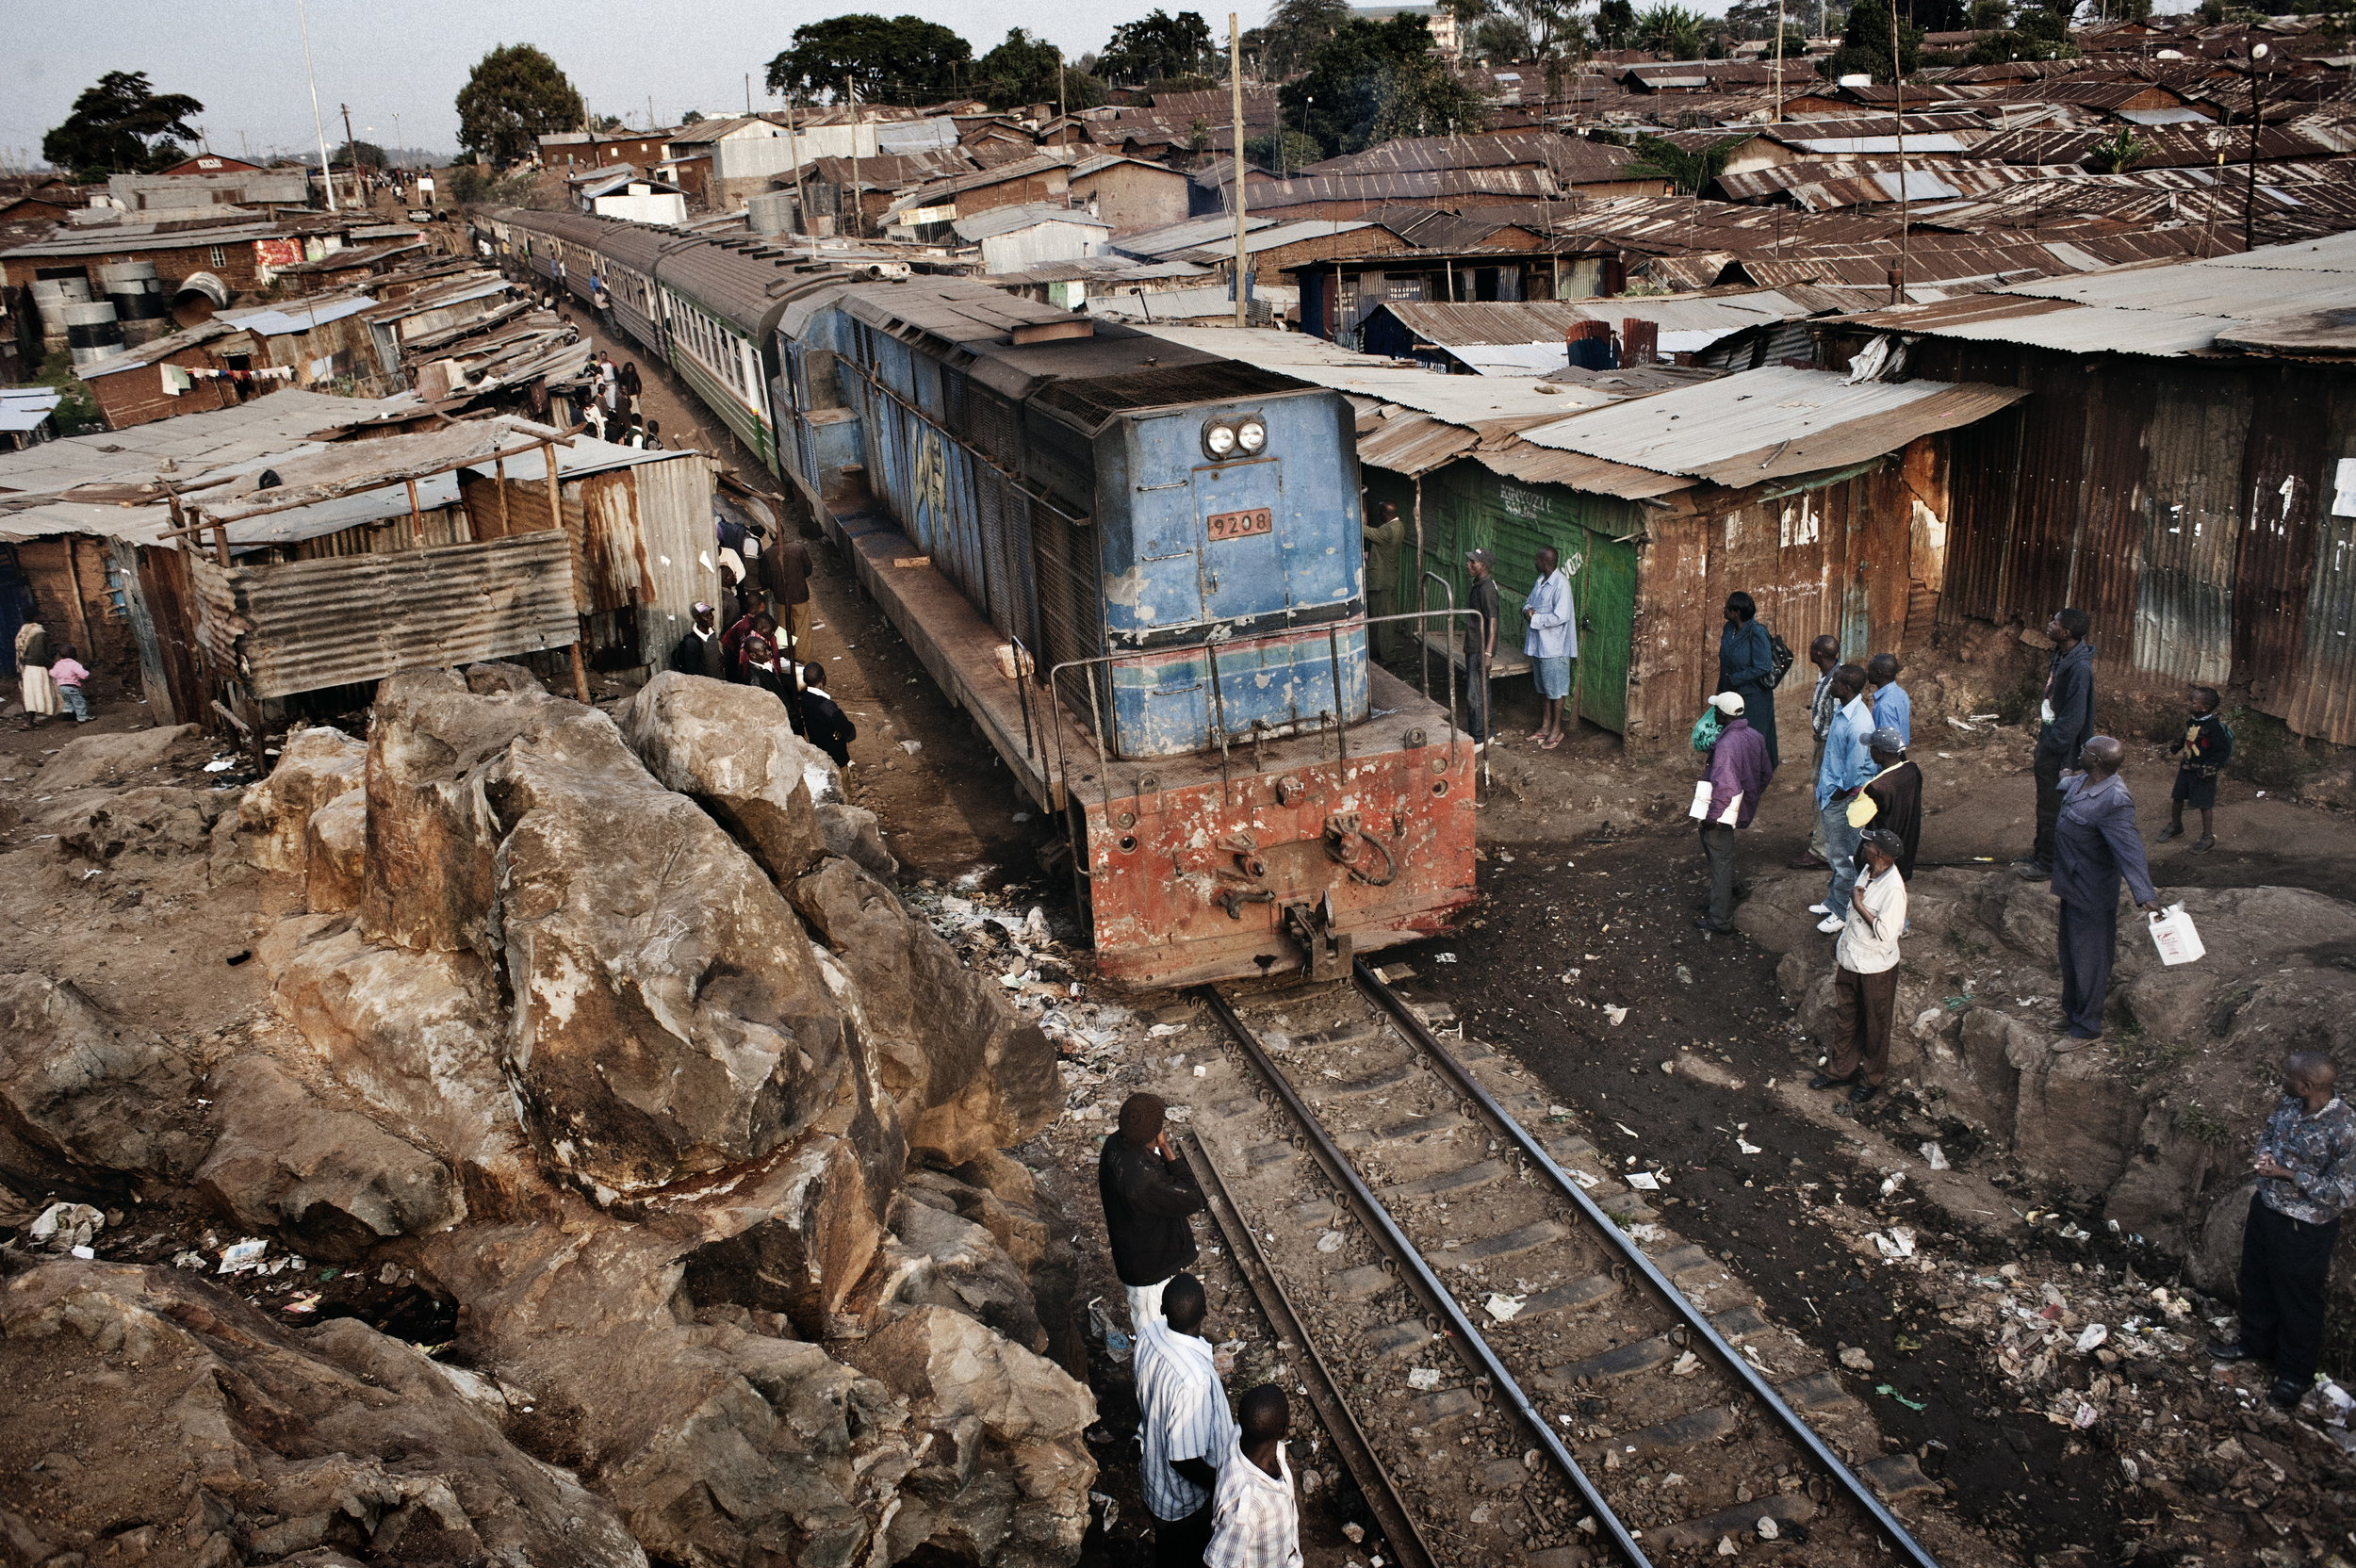 Kibera, Kenya. 6 July 2011